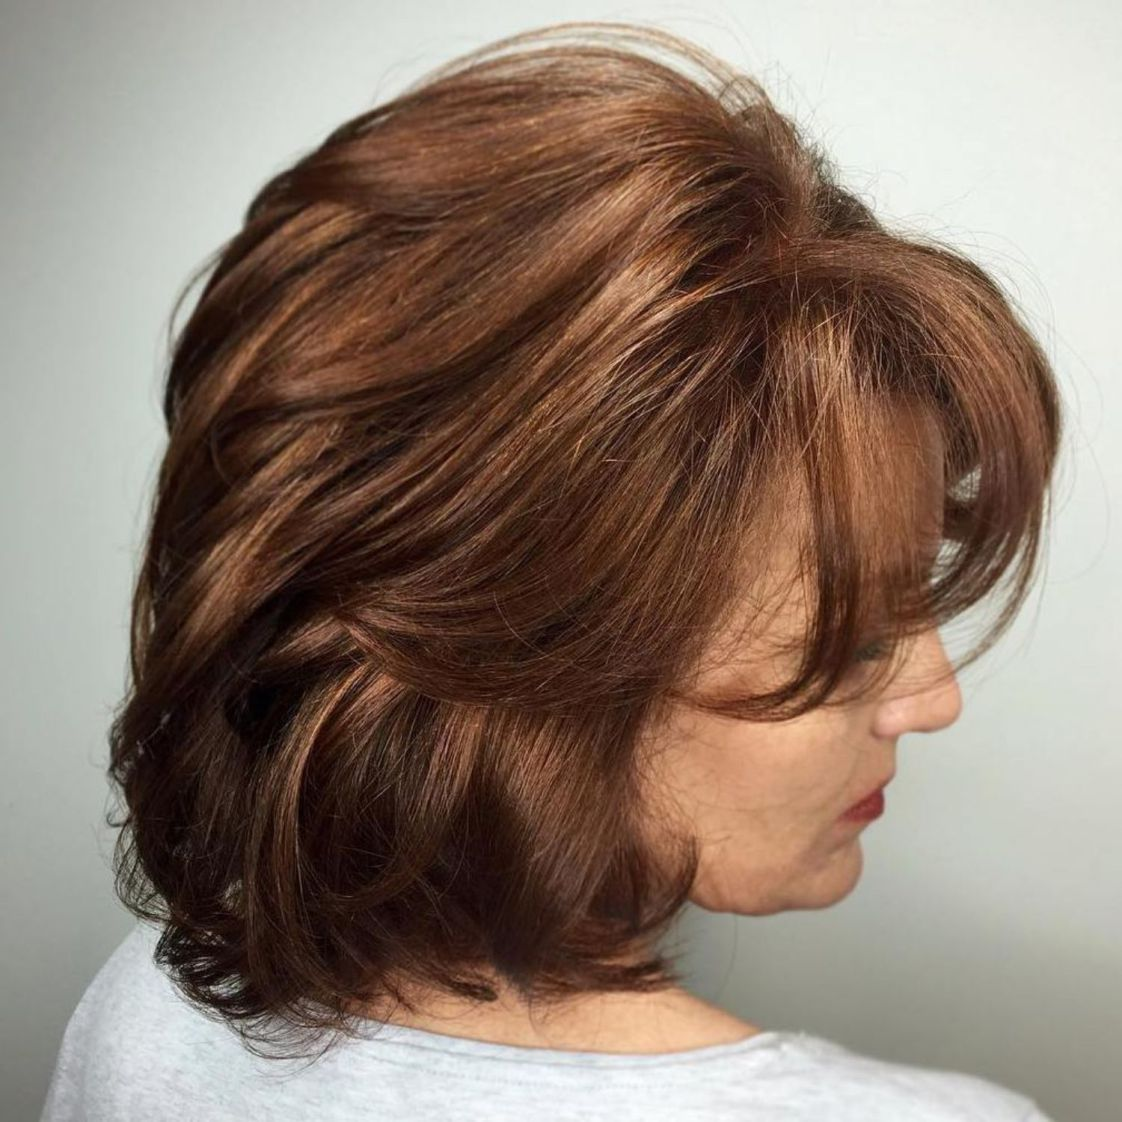 28+ Medium hairstyles with bangs over 60 ideas in 2021